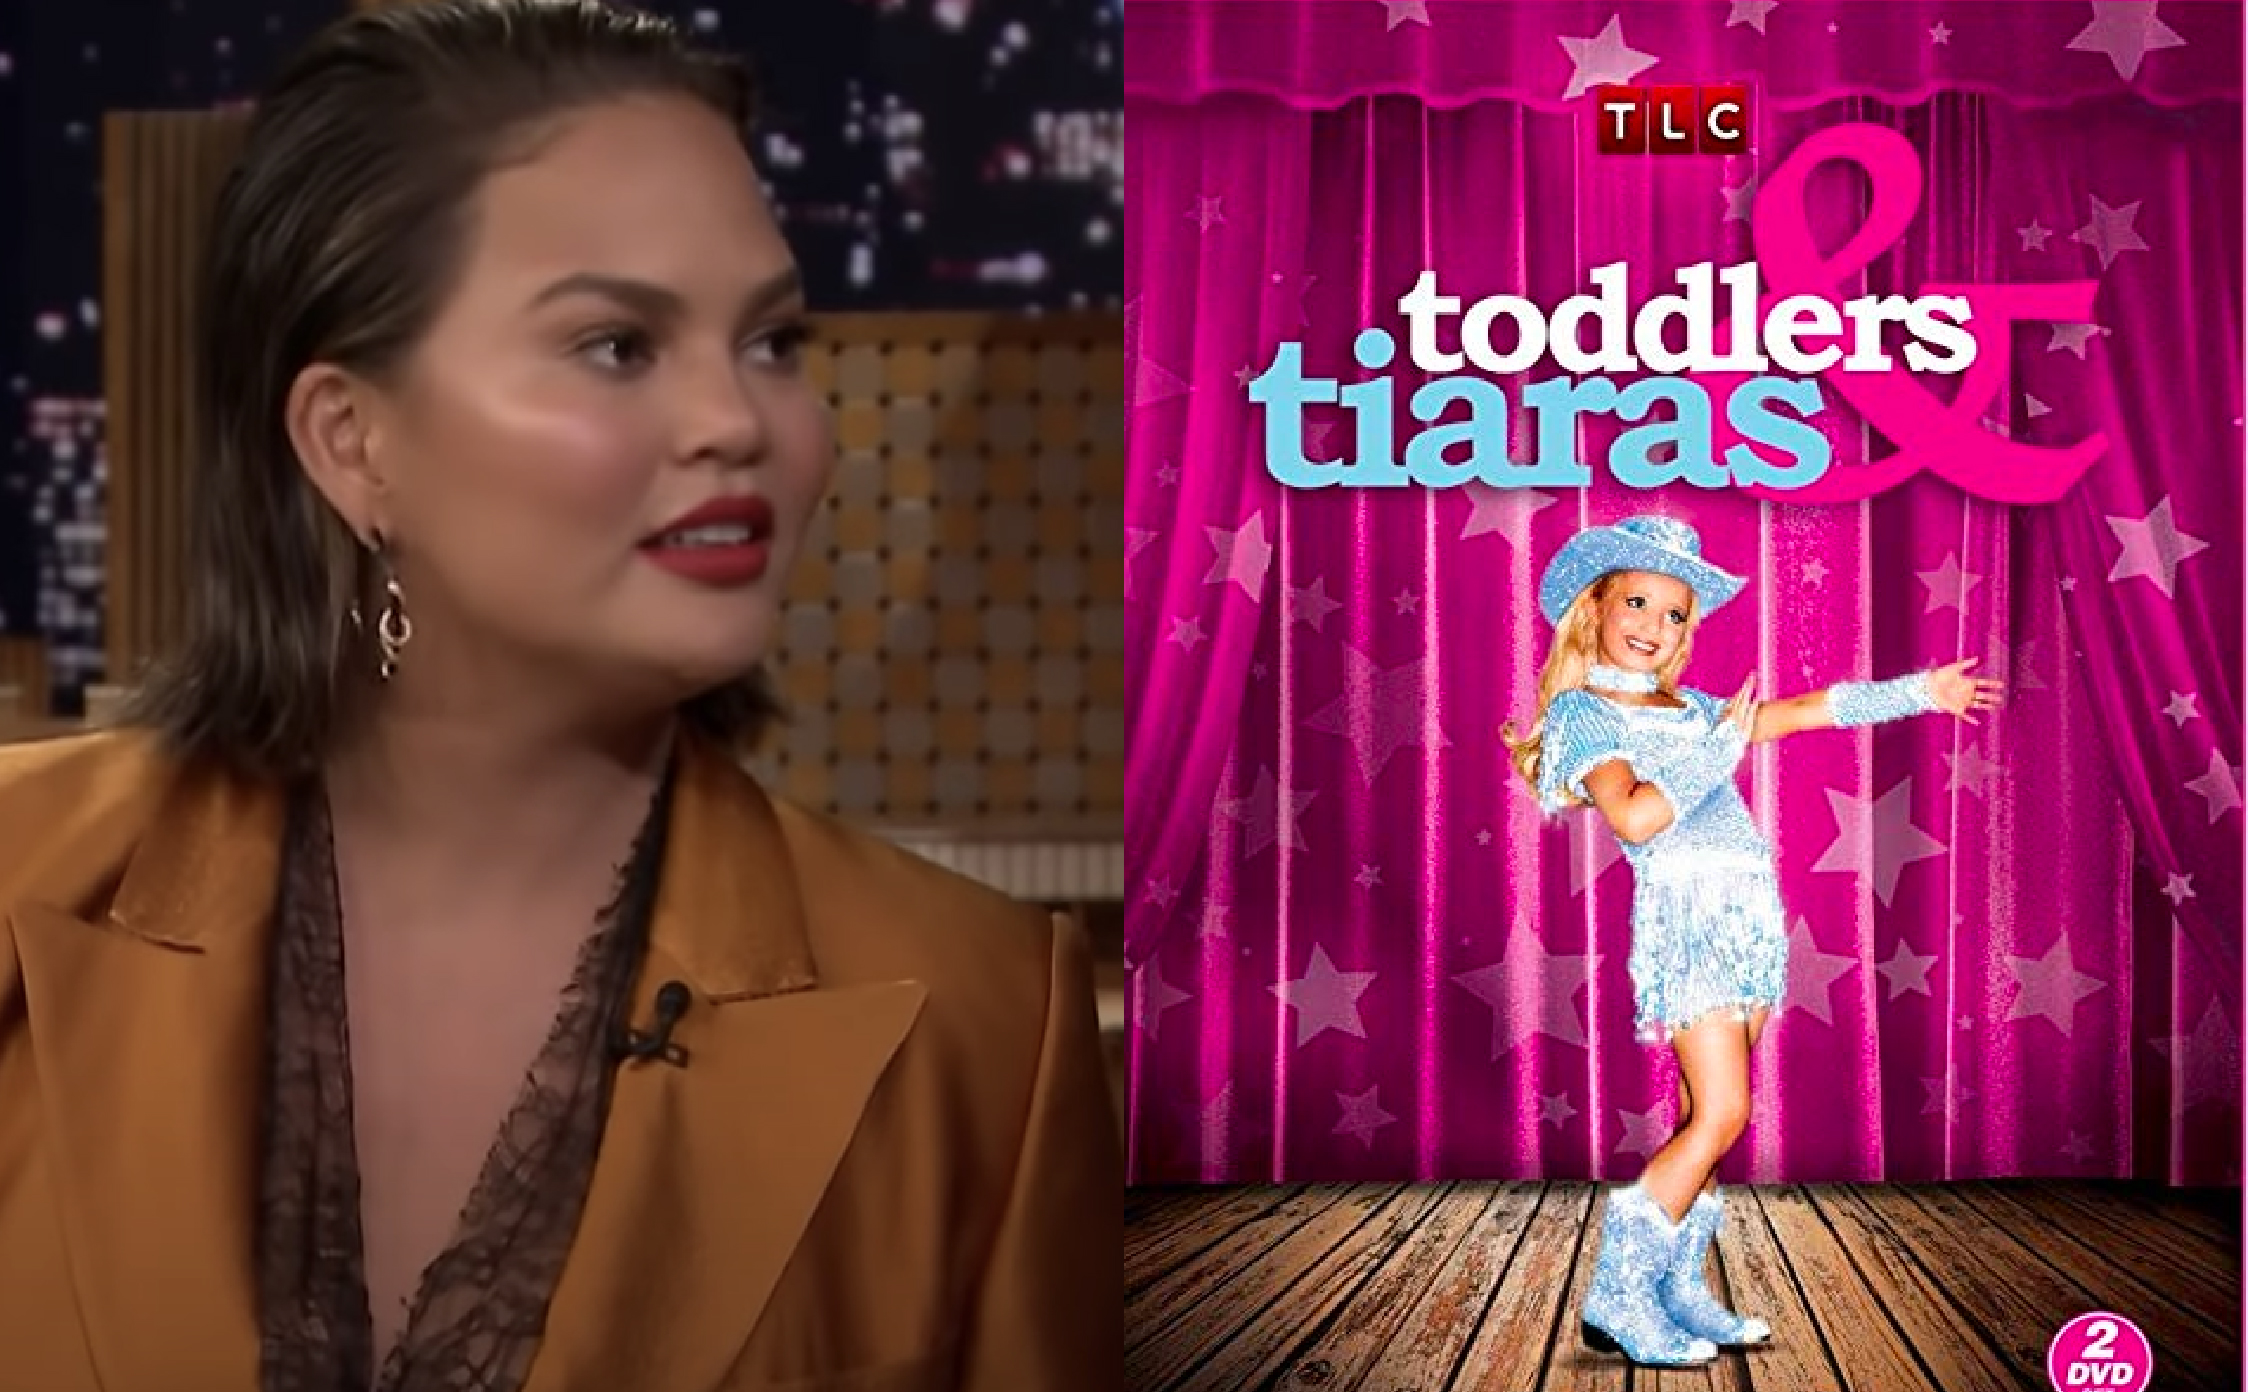 Chrissy Teigen Live-Tweets What Its Like to Fly While